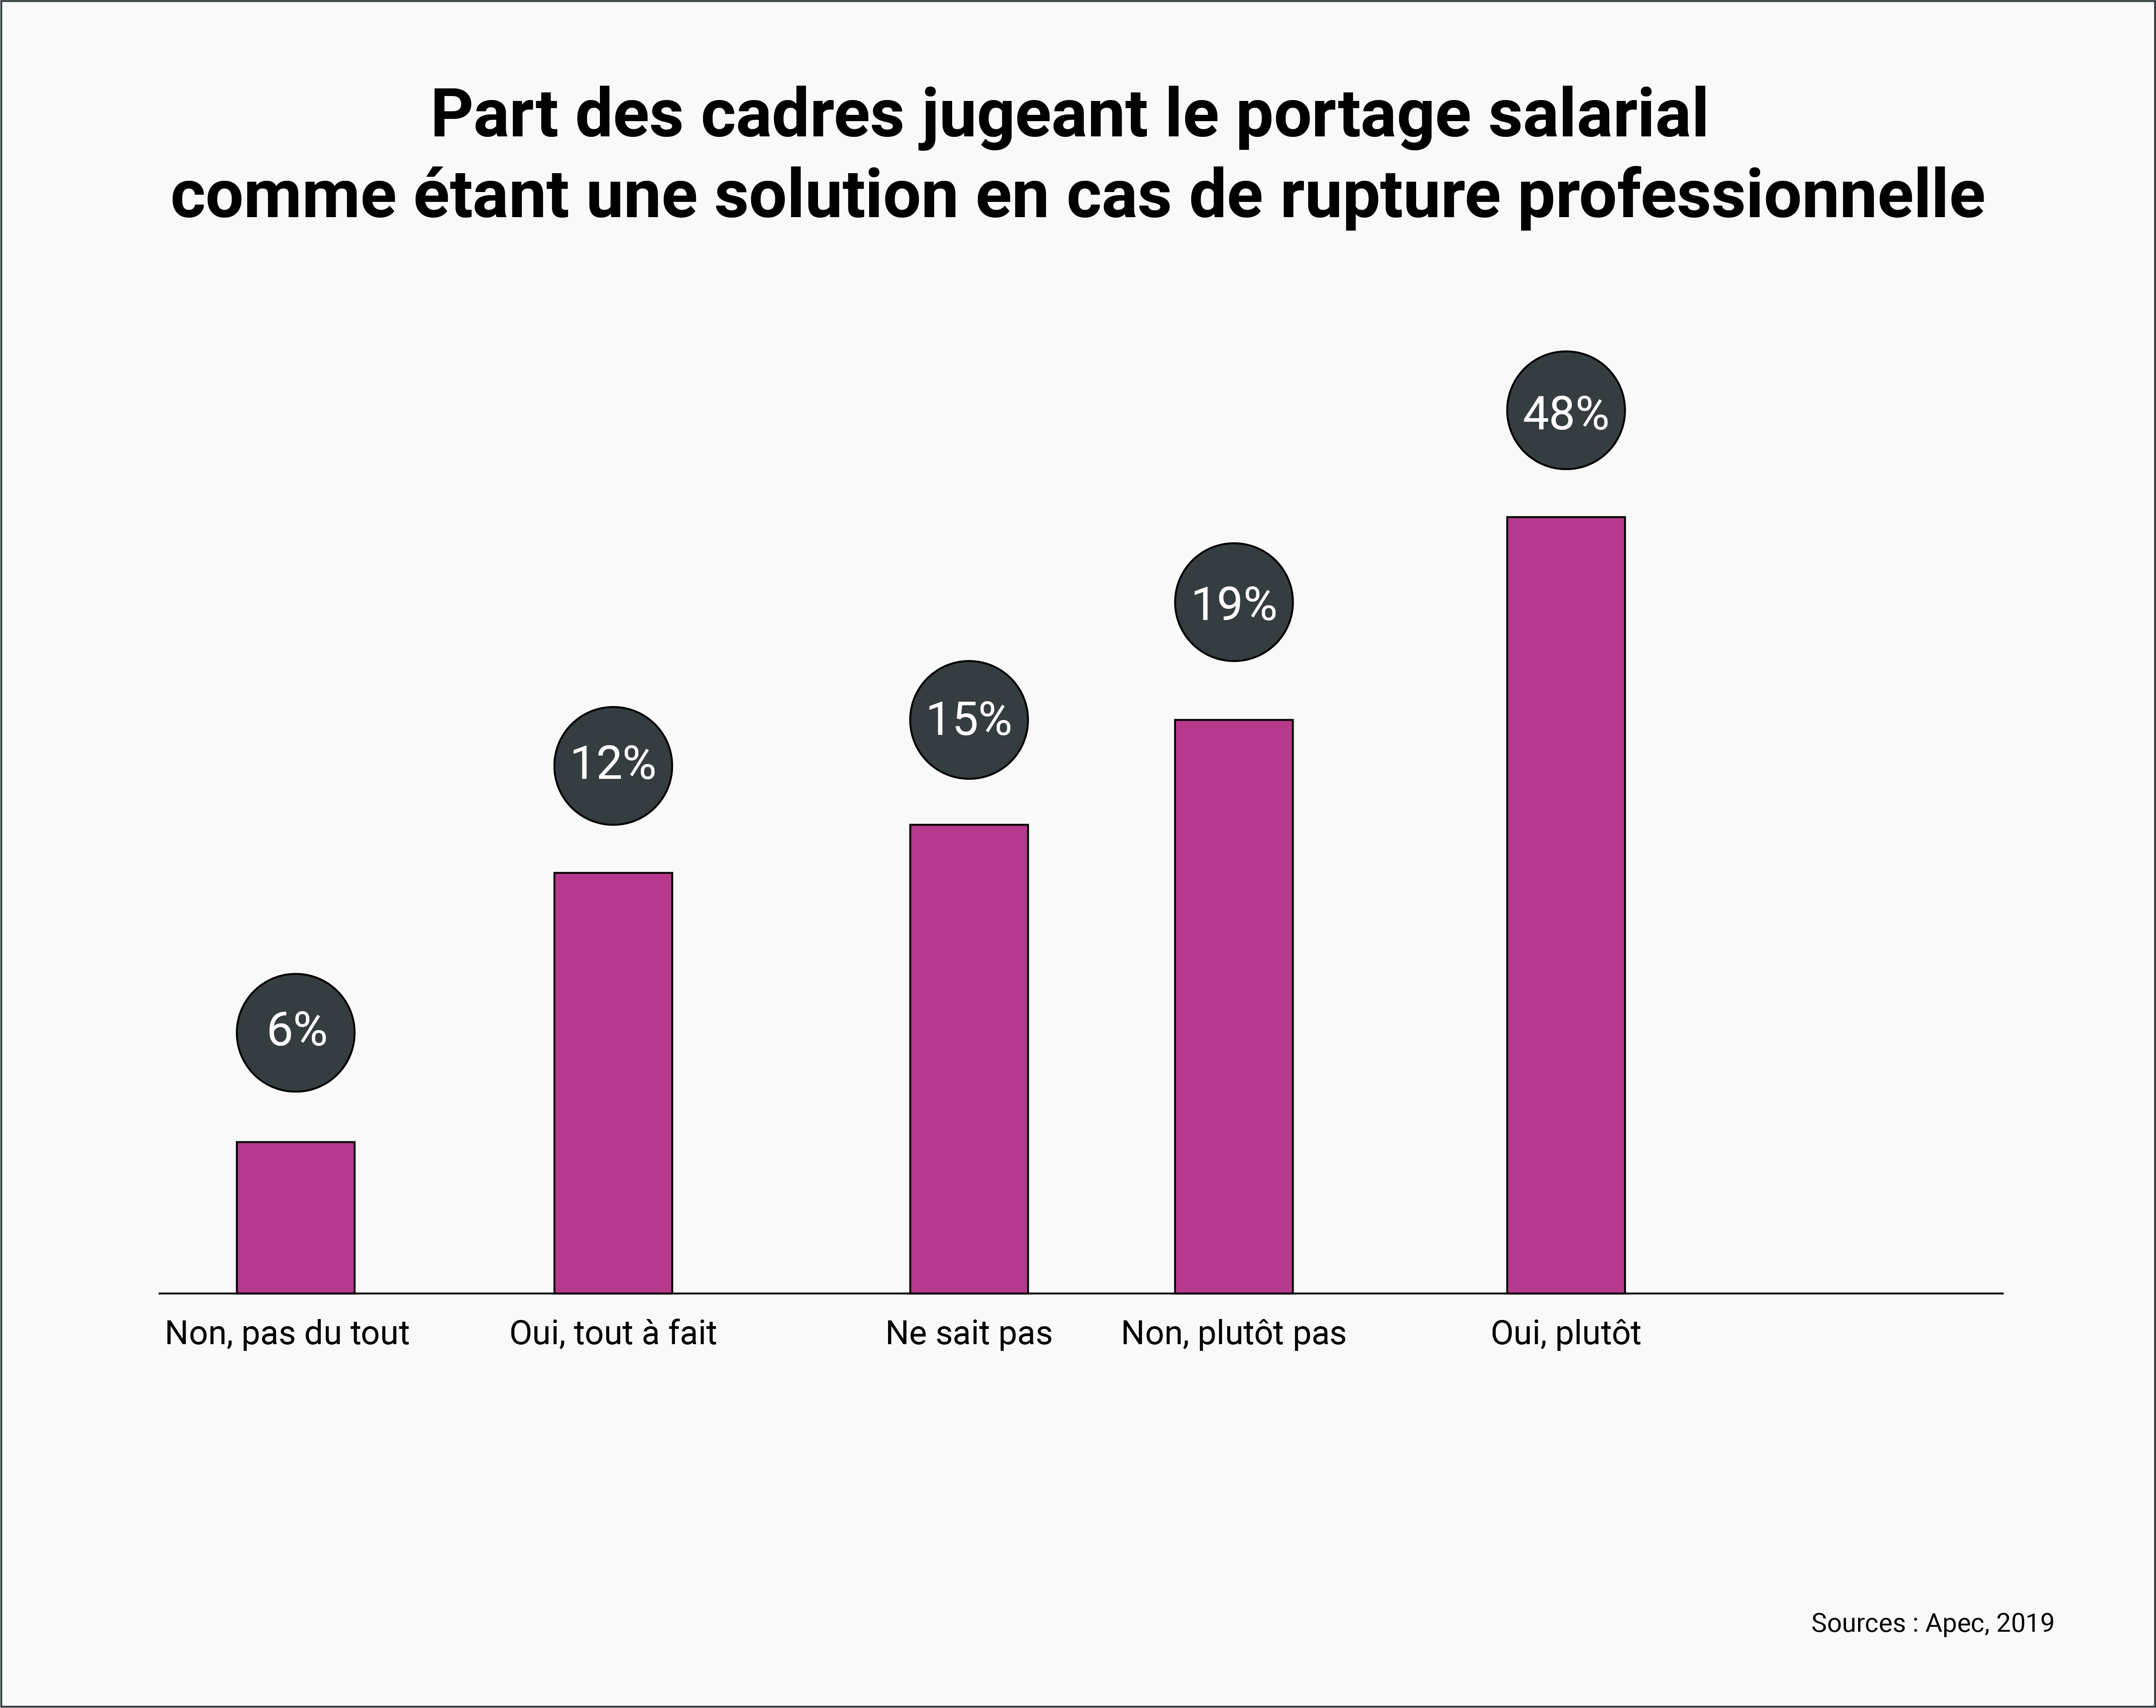 PORTAGE SALARIAL SOLUTION RUPTURE PROFESSIONNELLE